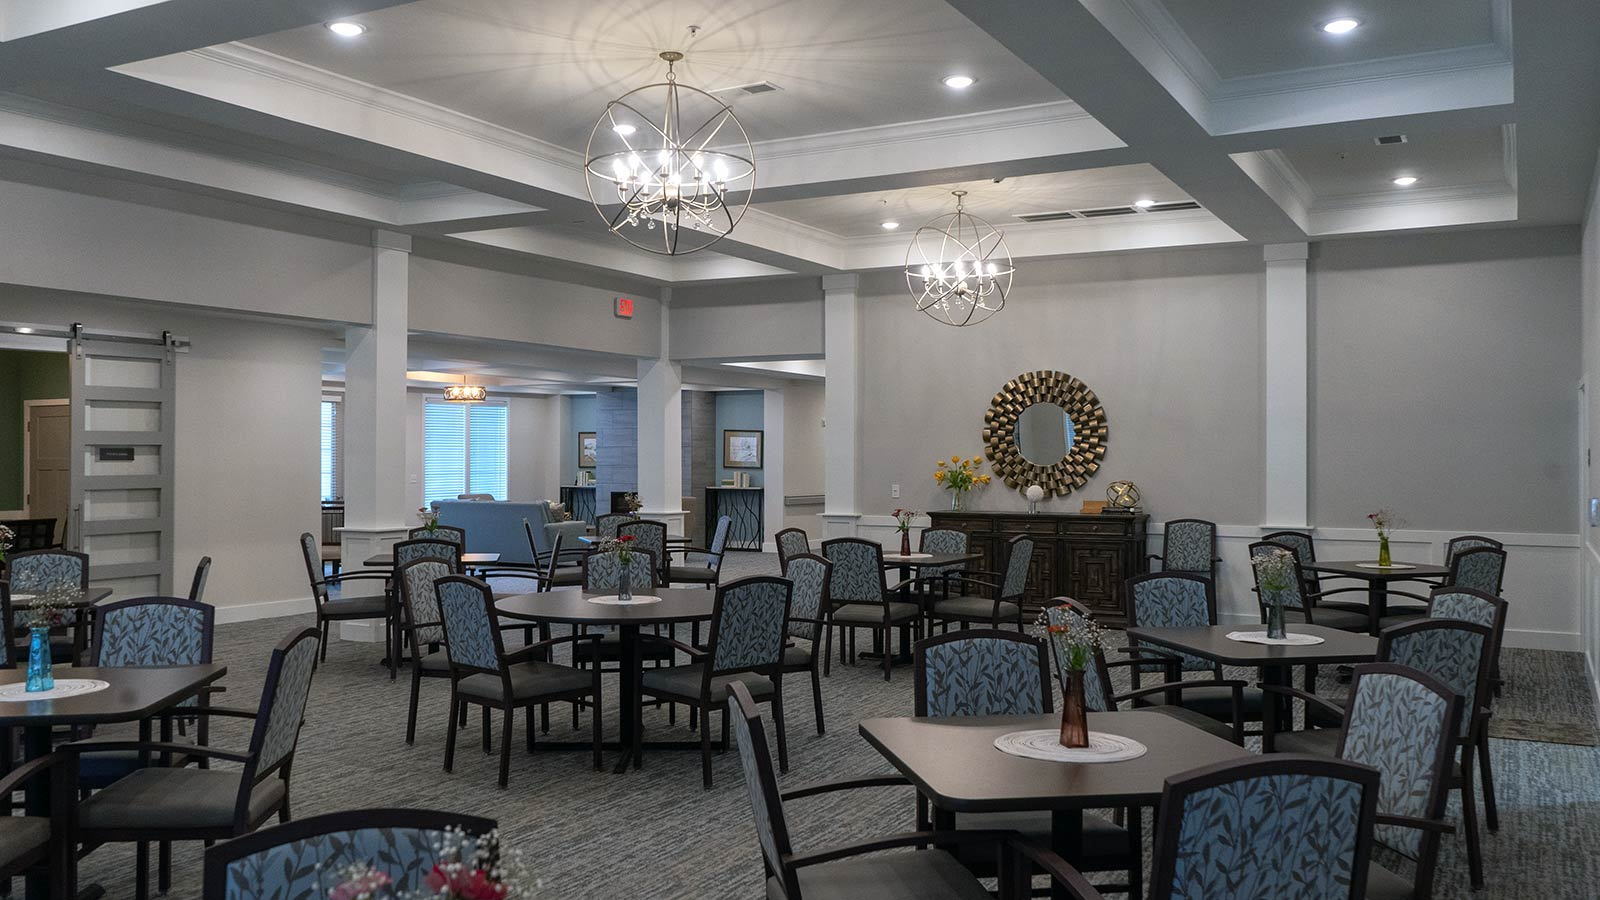 View Of Elegant Restaurant-style Dining Room With Tables And Chairs